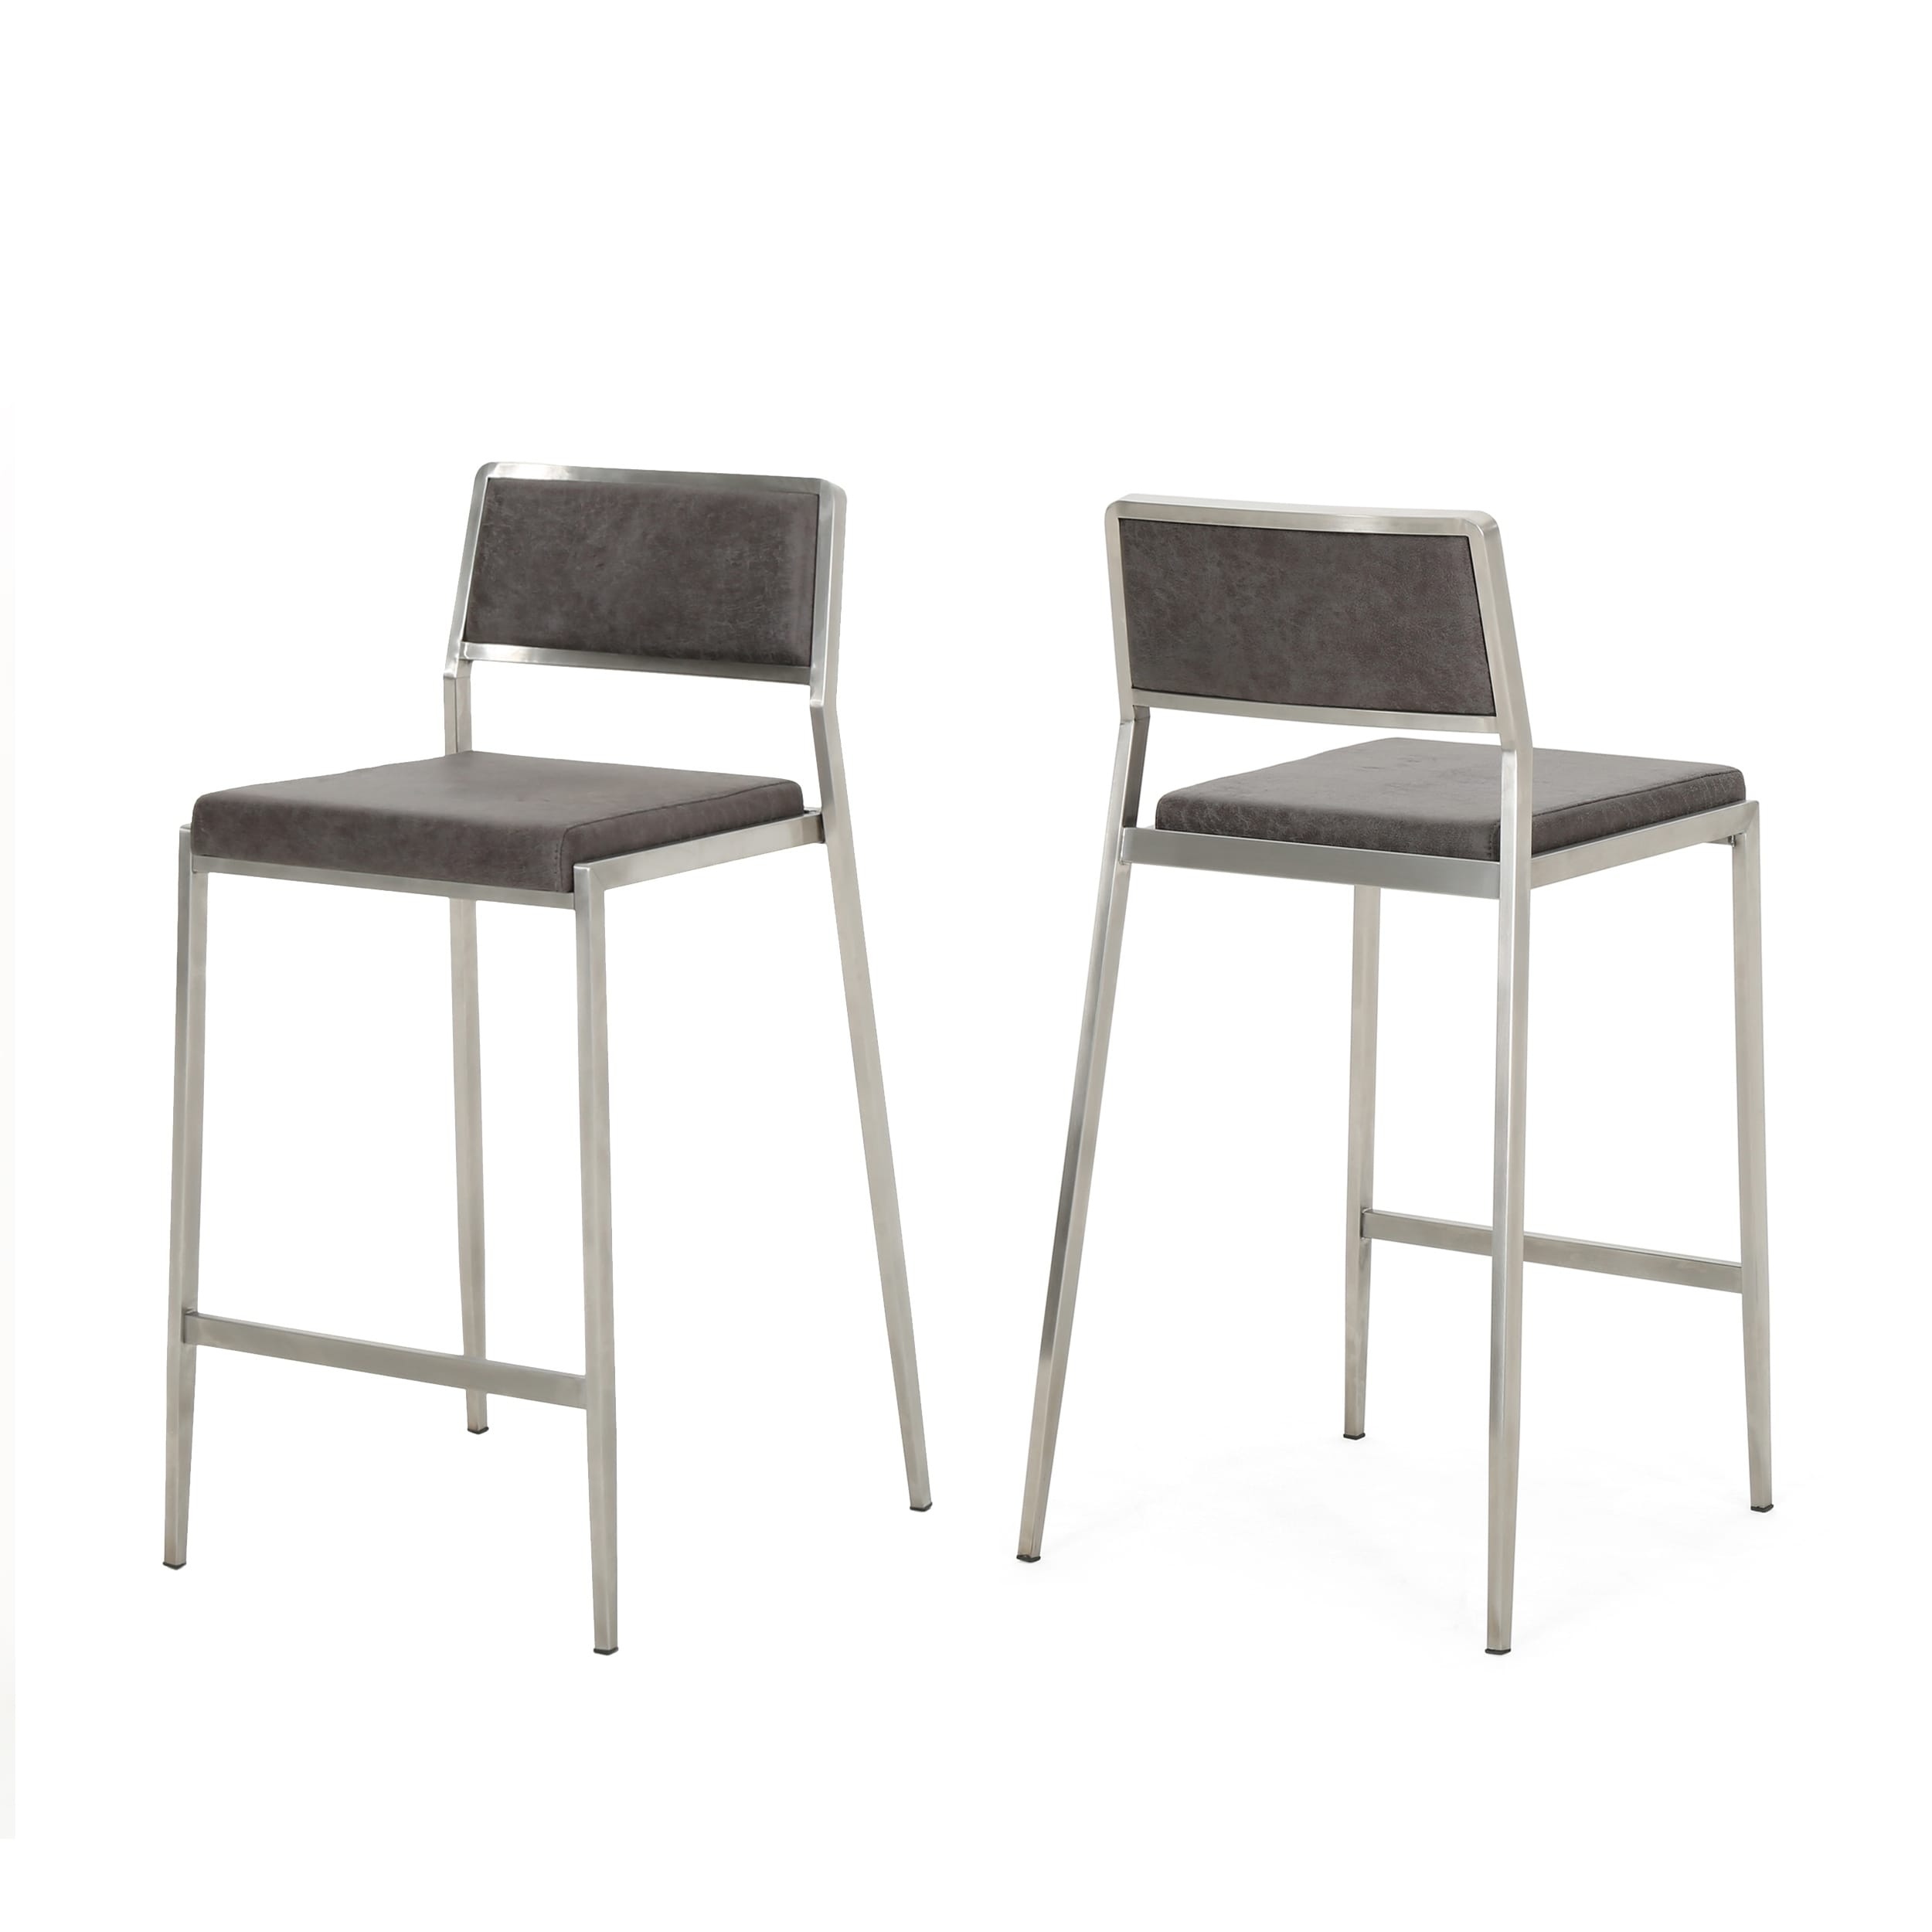 Prime Bridle 26 In Microfiber Counter Stool By Christopher Knight Home Set Of 2 Unemploymentrelief Wooden Chair Designs For Living Room Unemploymentrelieforg